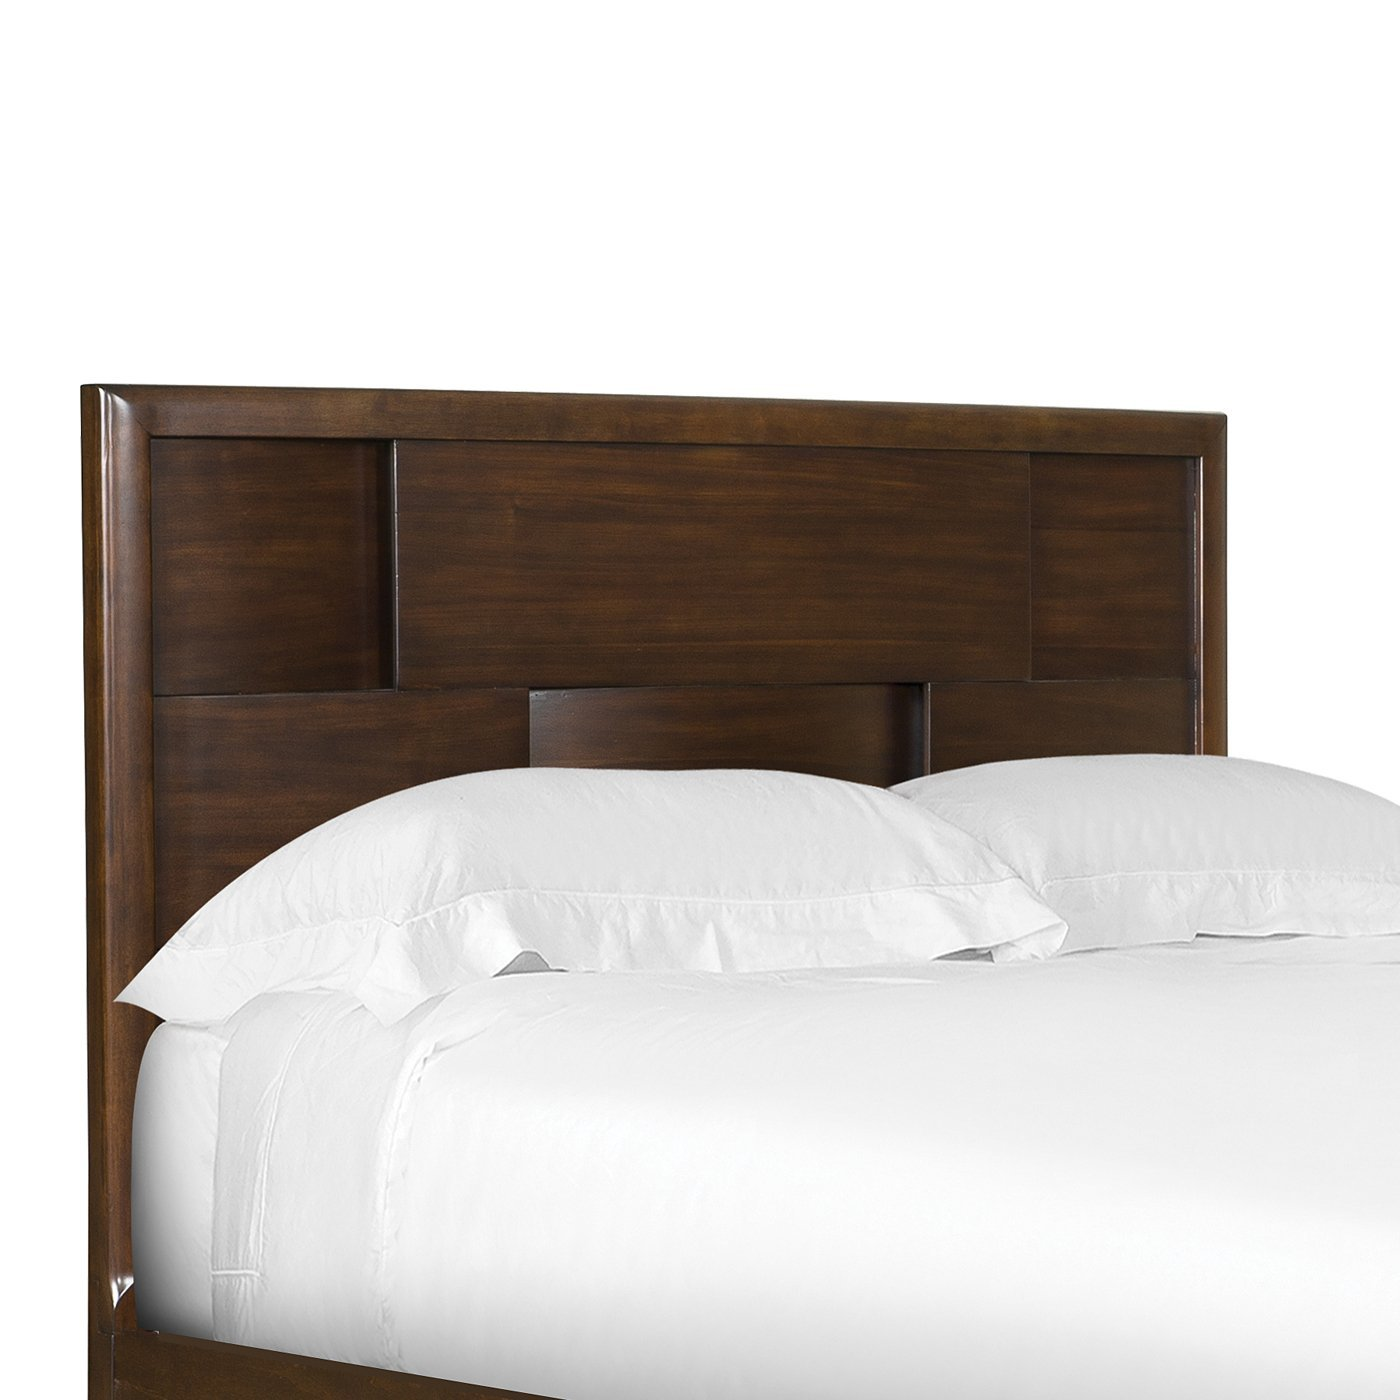 Very Impressive portraiture of Furniture > Bedroom Furniture > Panel > Wood Panel Art with #412C1F color and 1400x1400 pixels